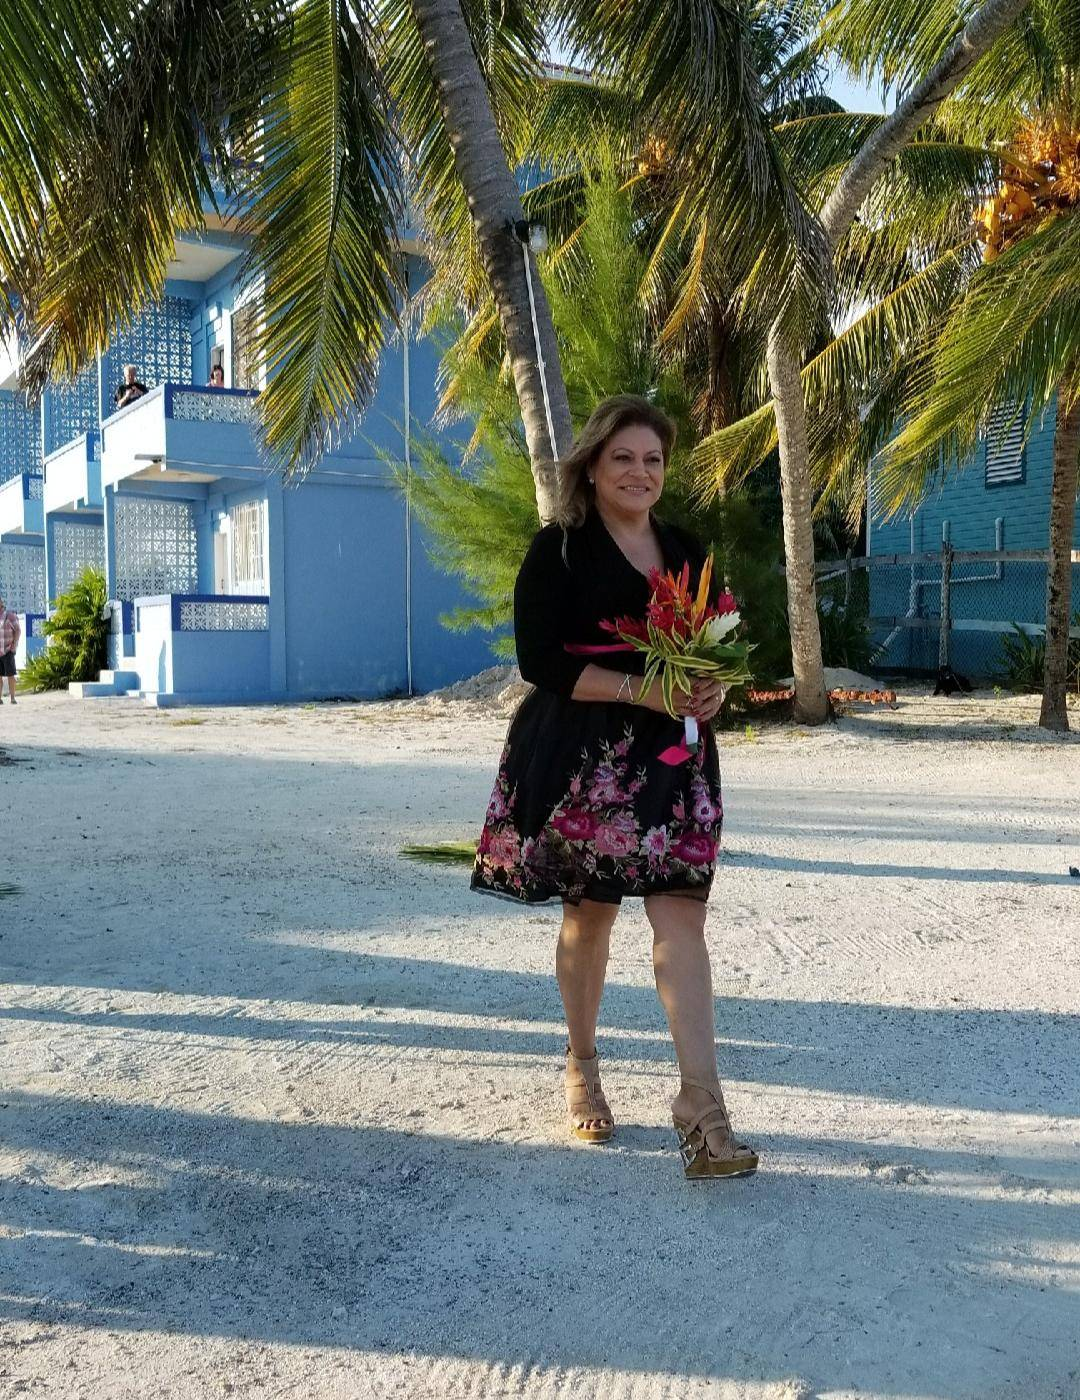 MAID-OF-HONOR, SAN PEDRO, BELIZE